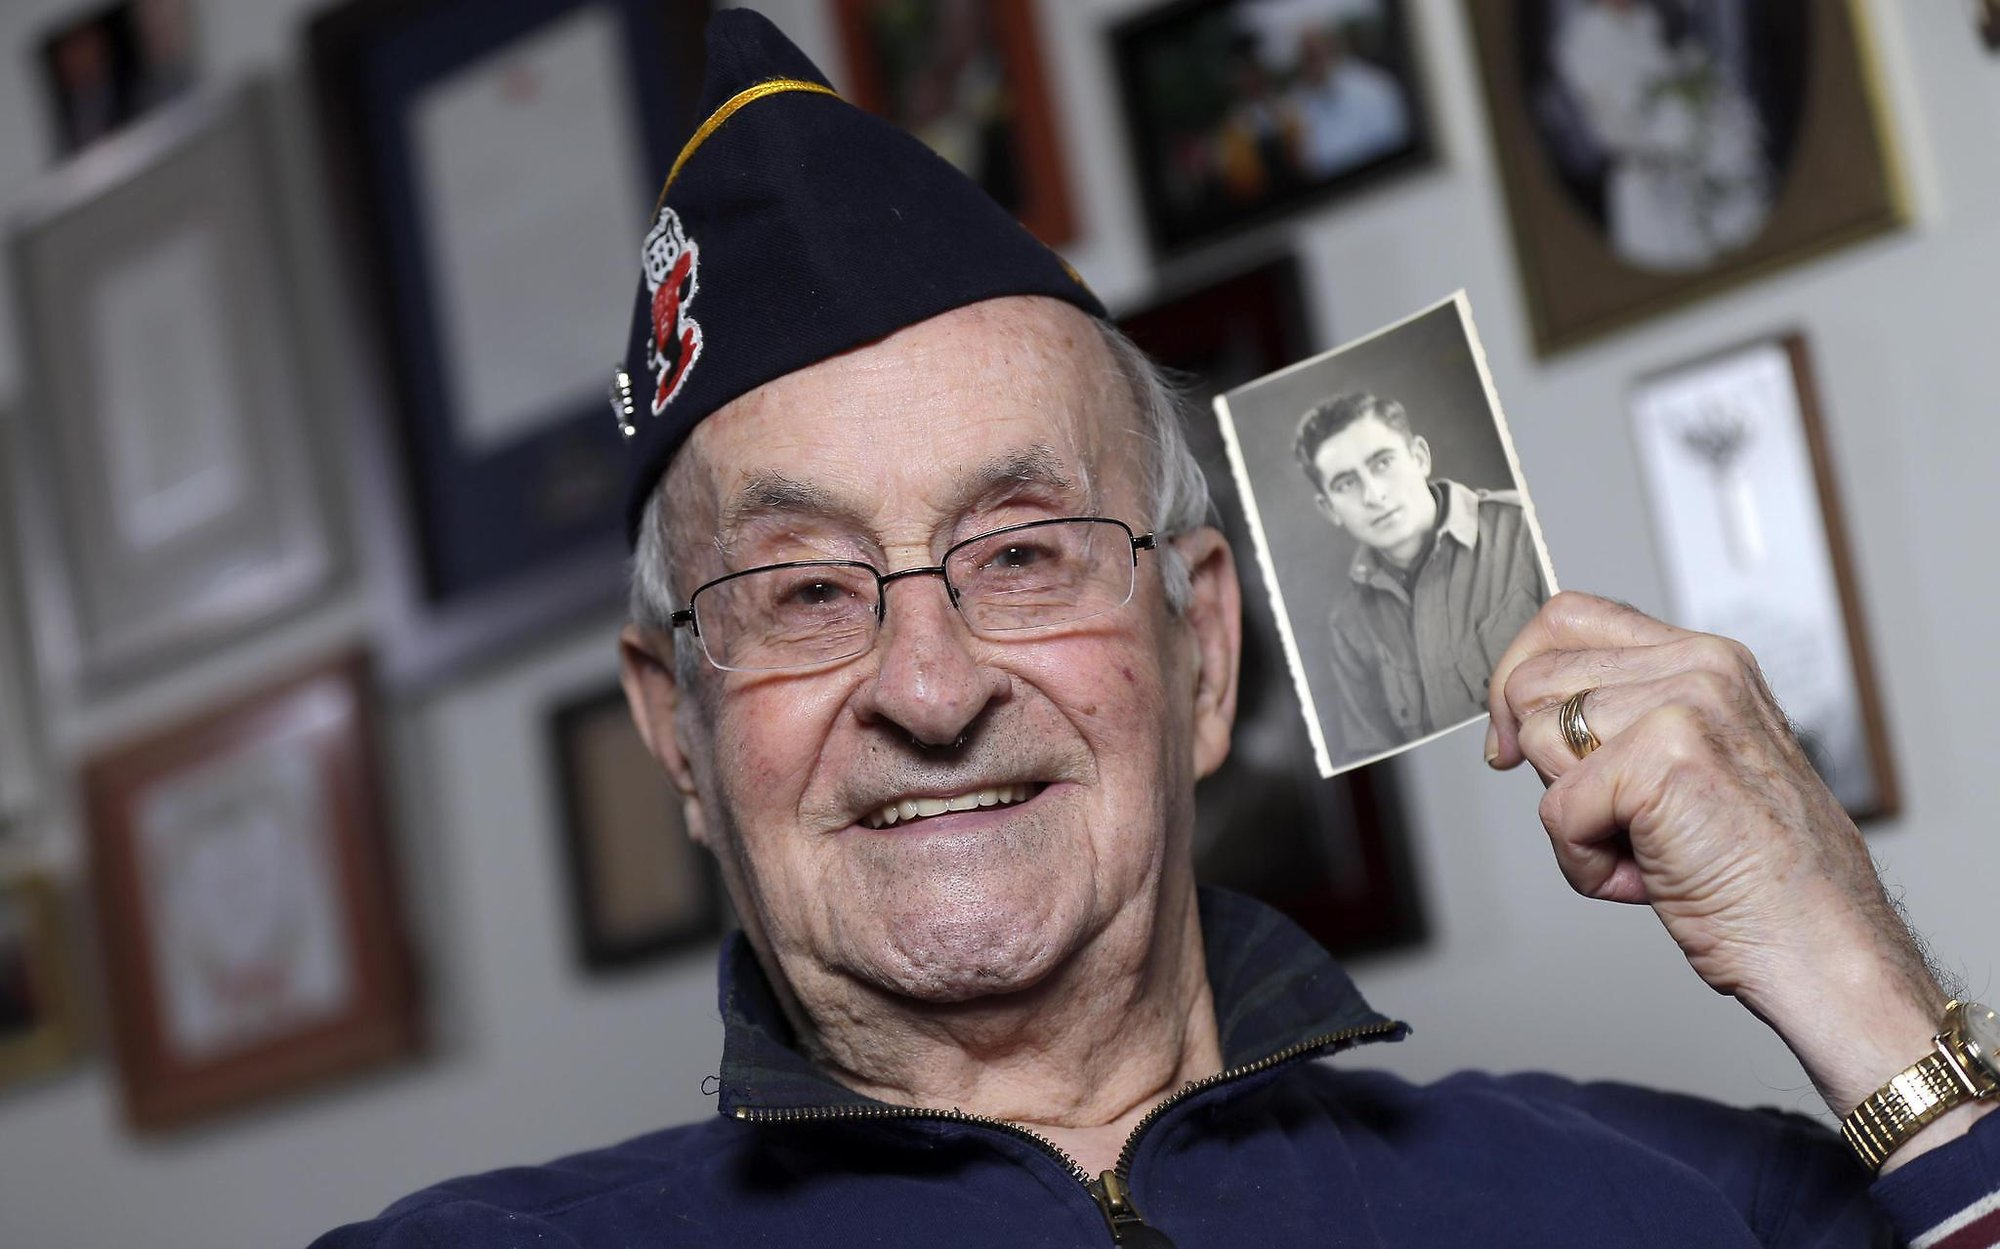 World War II veteran Ralph Ticcioni, 93, showing a photo of his younger self as a soldier. Credit: Media.jrn.com ( full link )